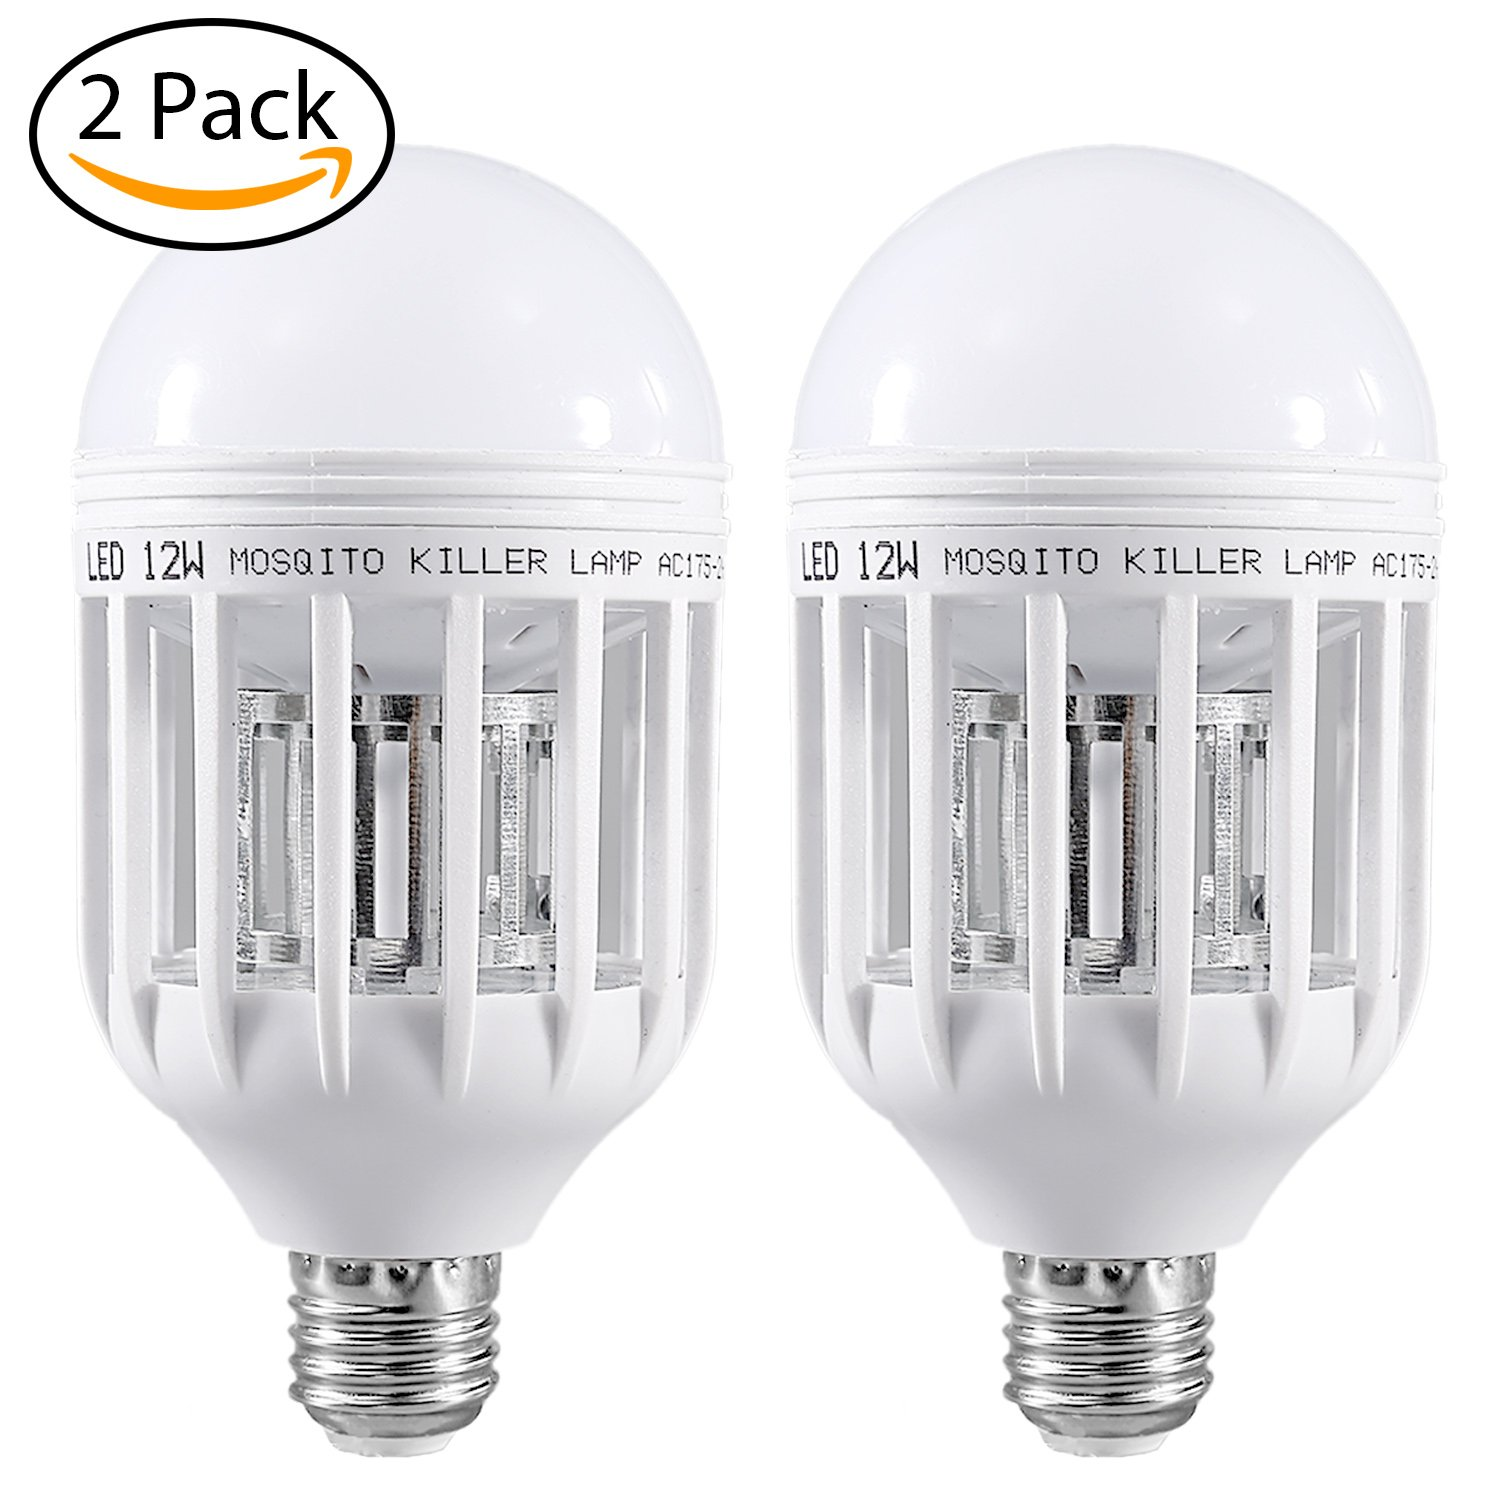 2 Pack Mosquito Killer Lamp, Bug Zapper Light Bulb, Electronic Insect Killer, Fly Killer Indoor Bug Zapper 110V E26/E27 Light Bulb Socket Base for Home Indoor Outdoor Garden Patio Backyard